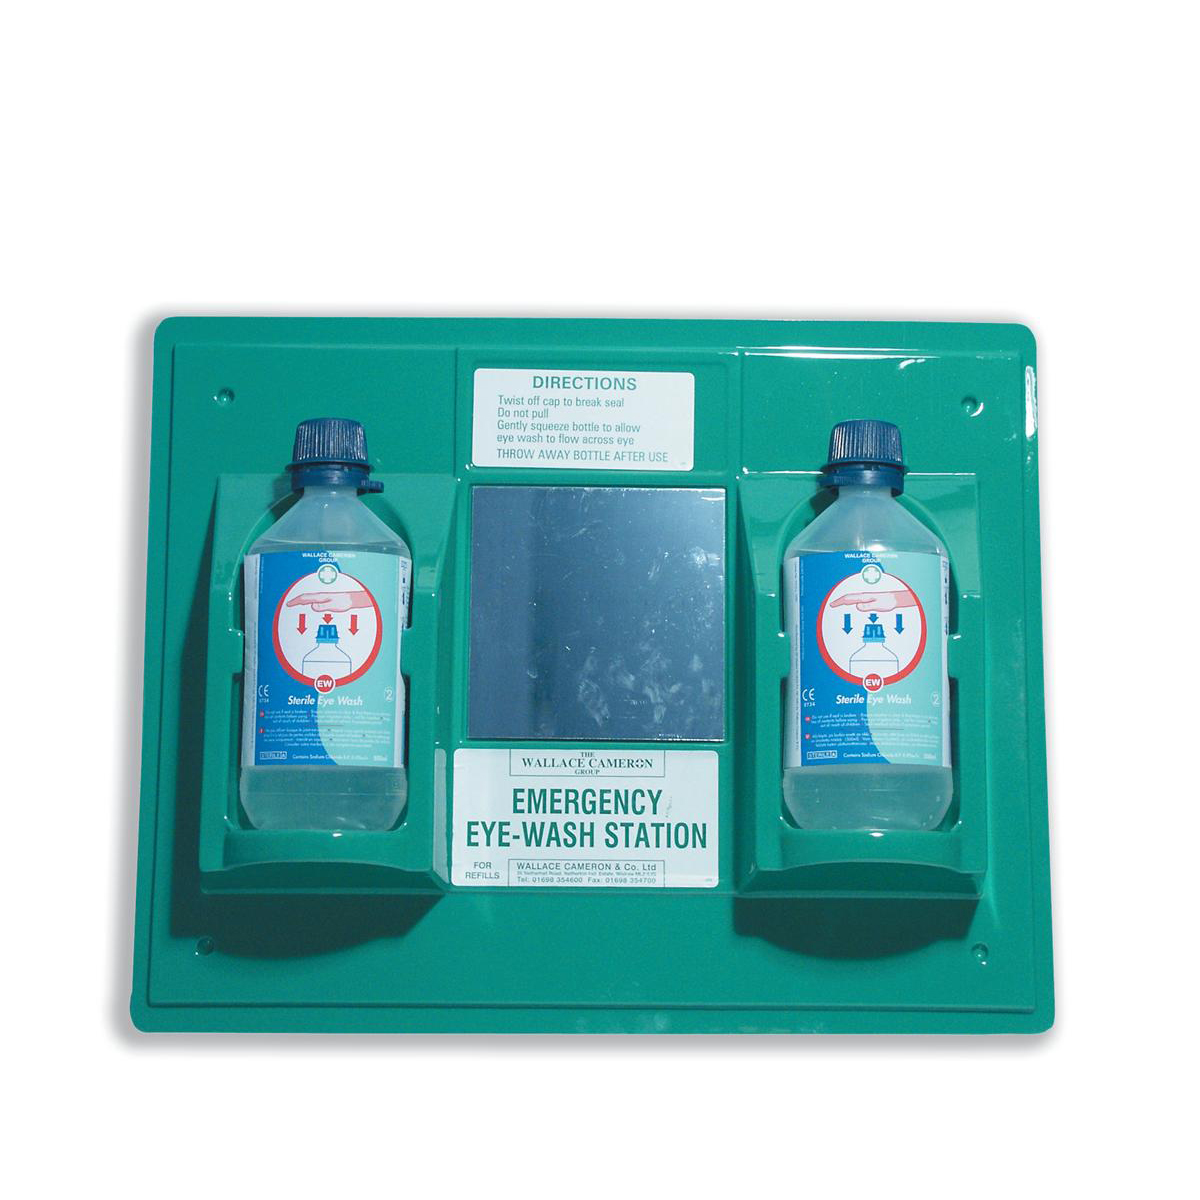 Wallace Cameron Astroplast First-Aid Emergency Eyewash Station 2 x 500ml Bottles Ref 2402028